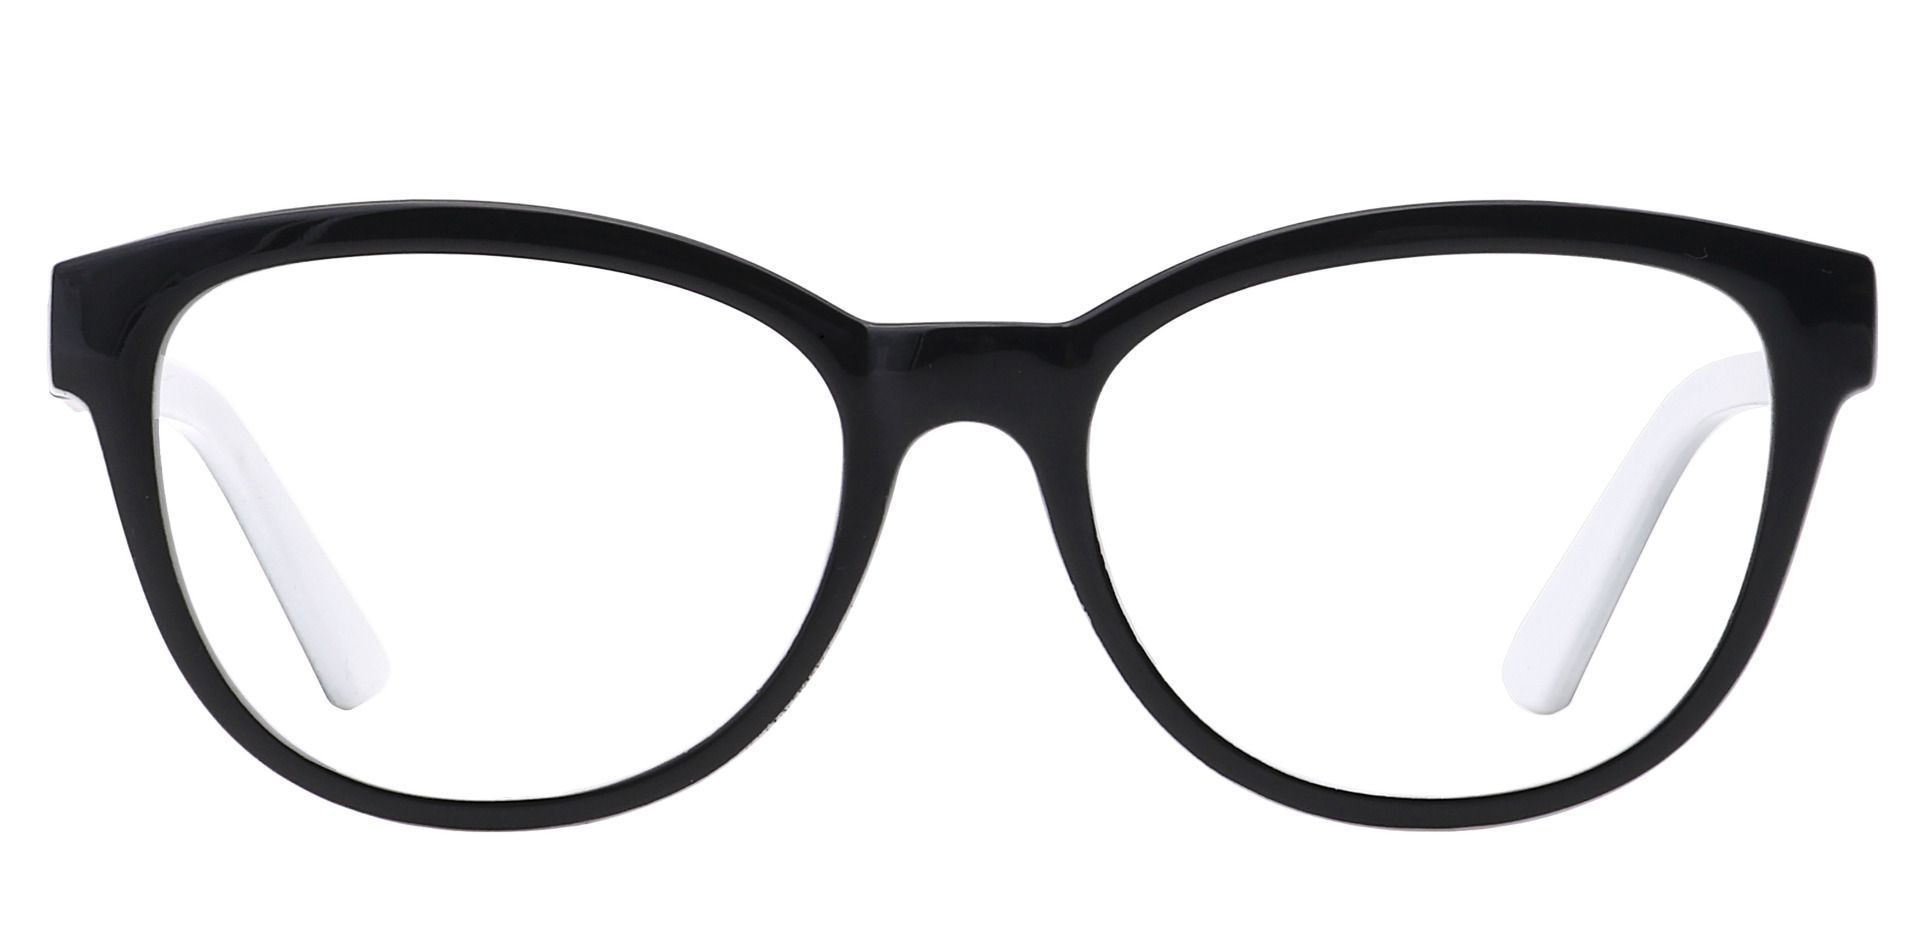 Primrose Oval Lined Bifocal Glasses - Black